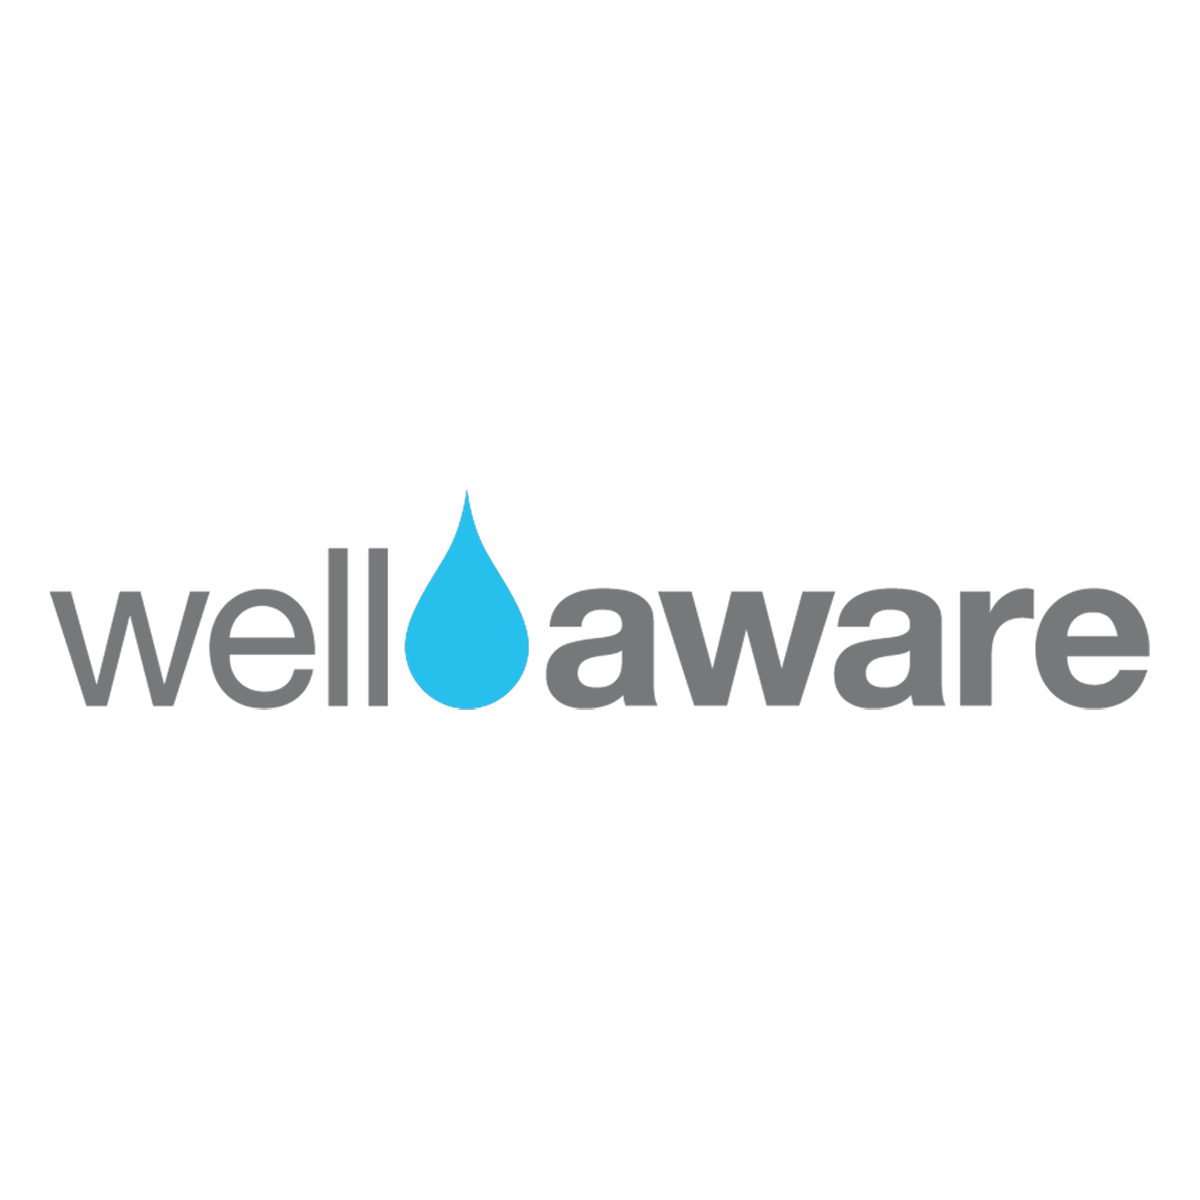 Biofriendly is a proud supporter of Well Aware